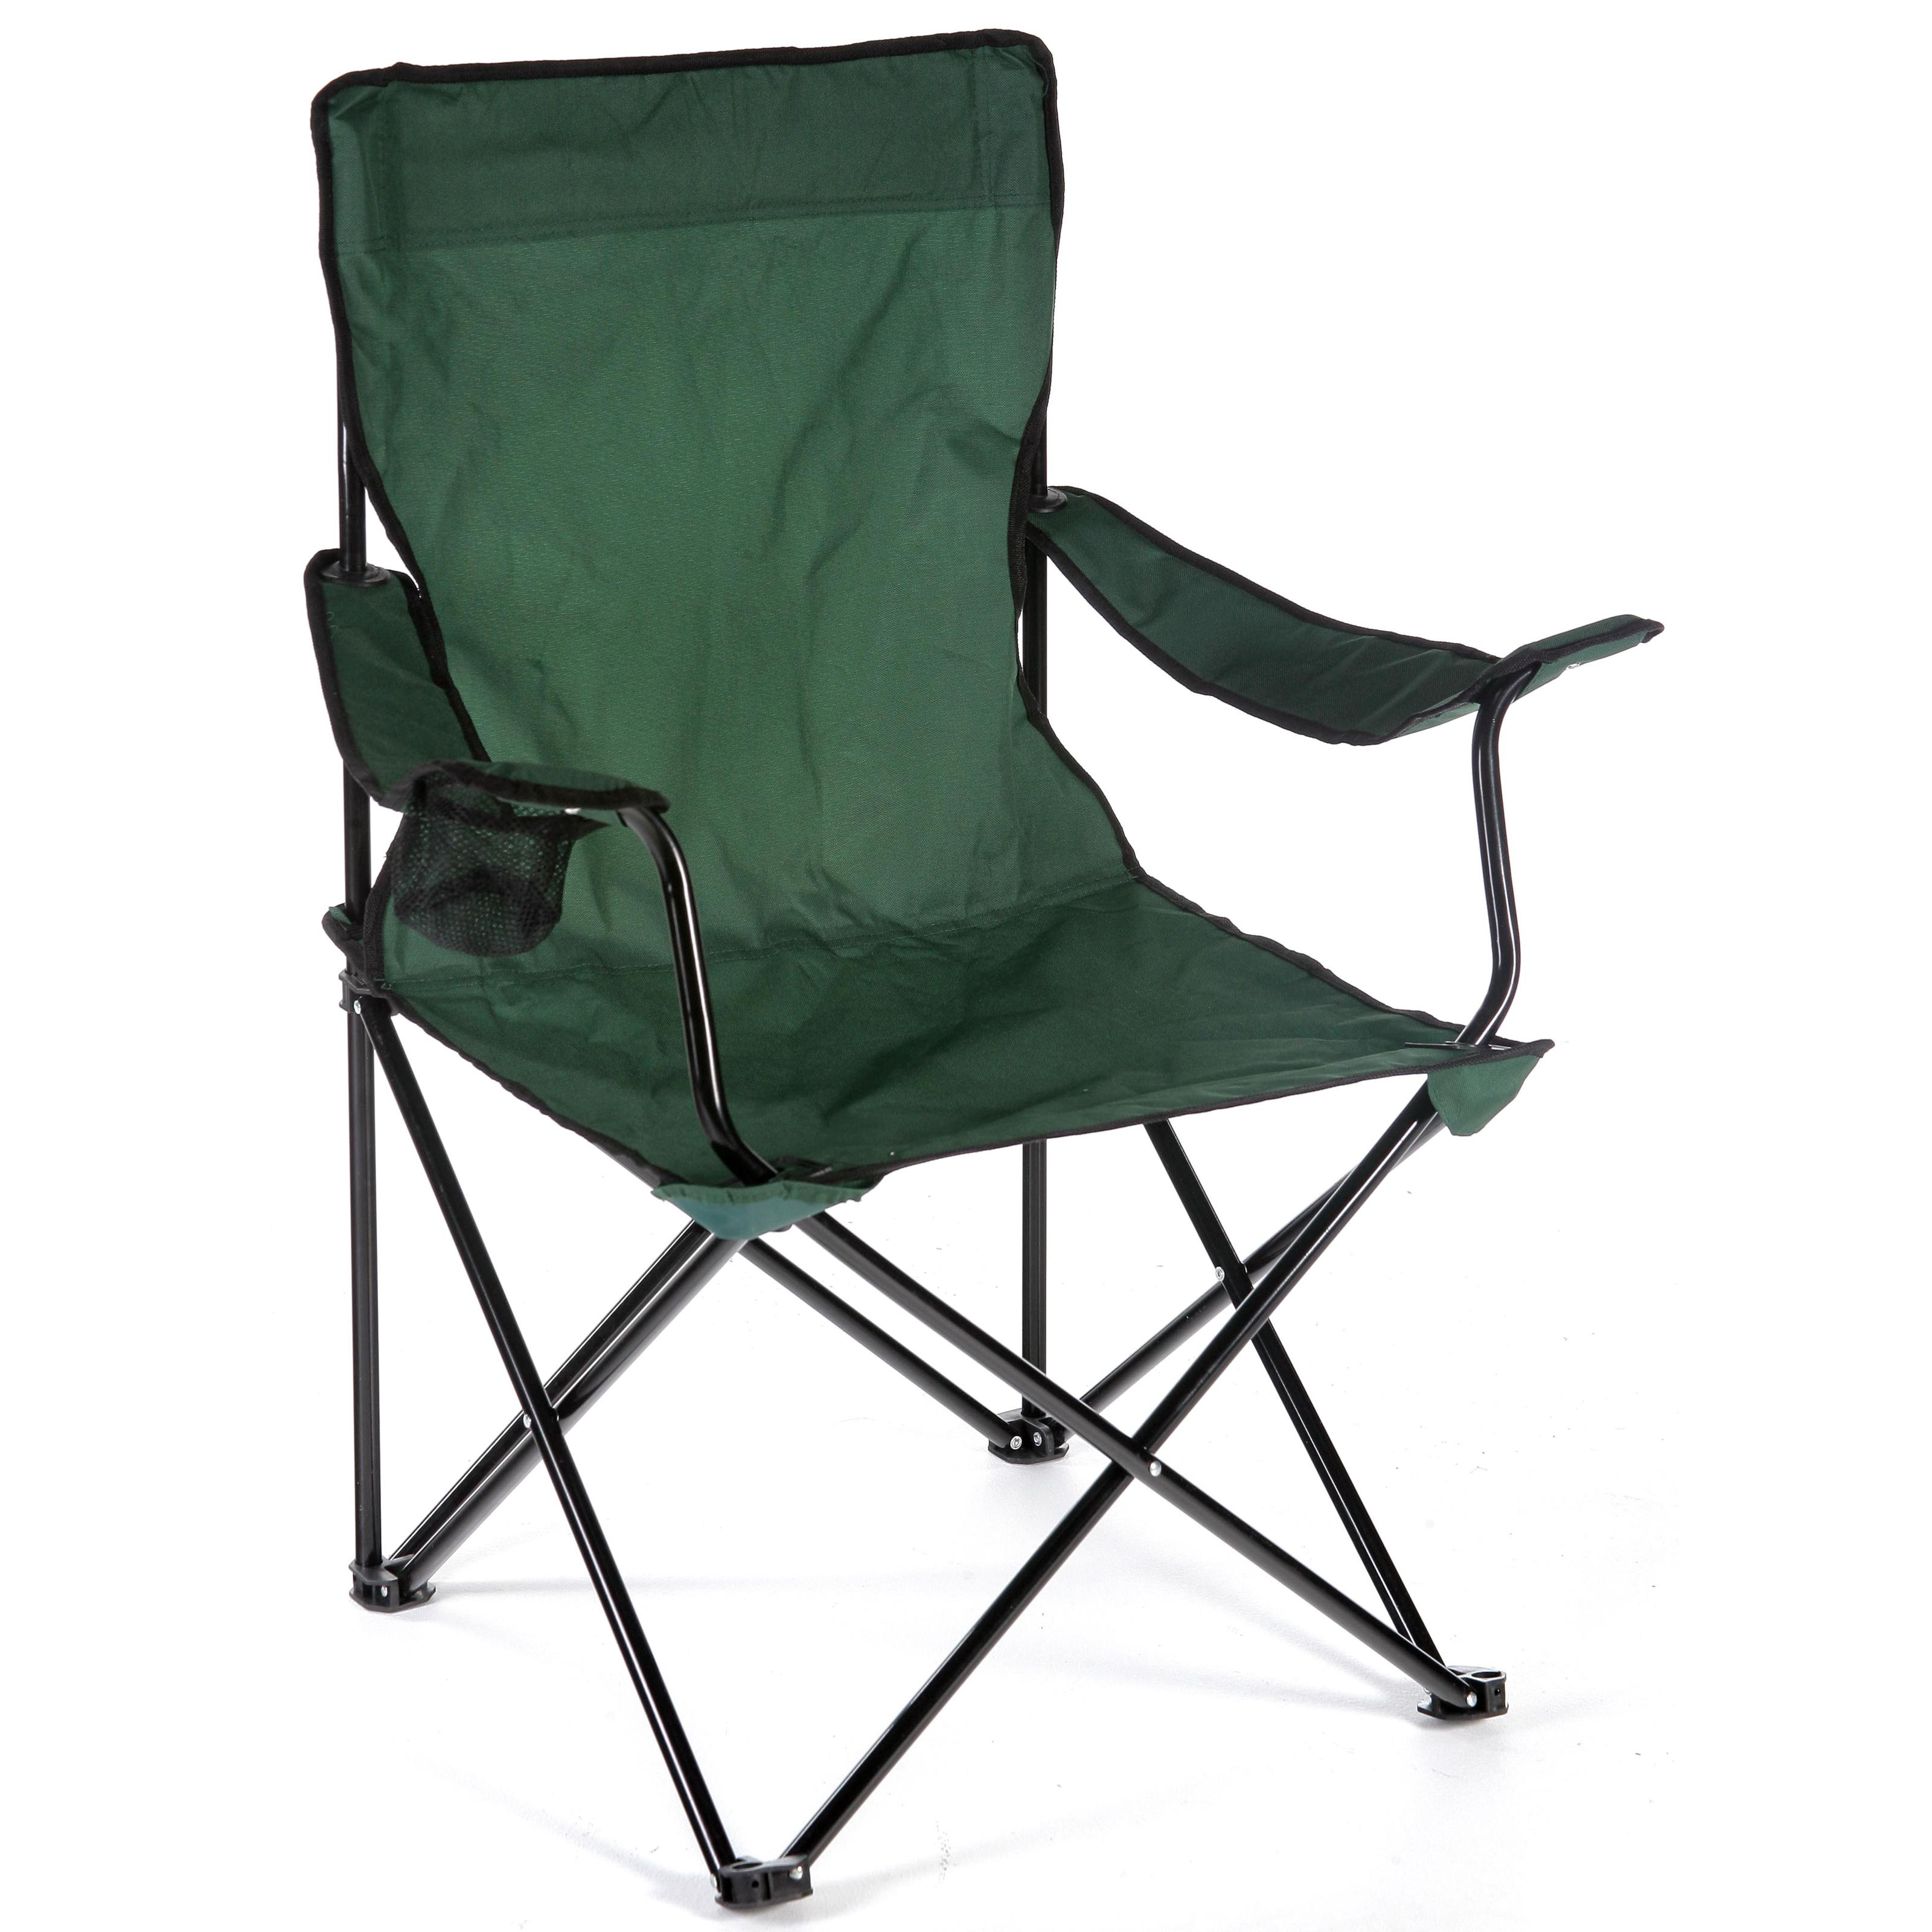 how to fix a broken camping chair